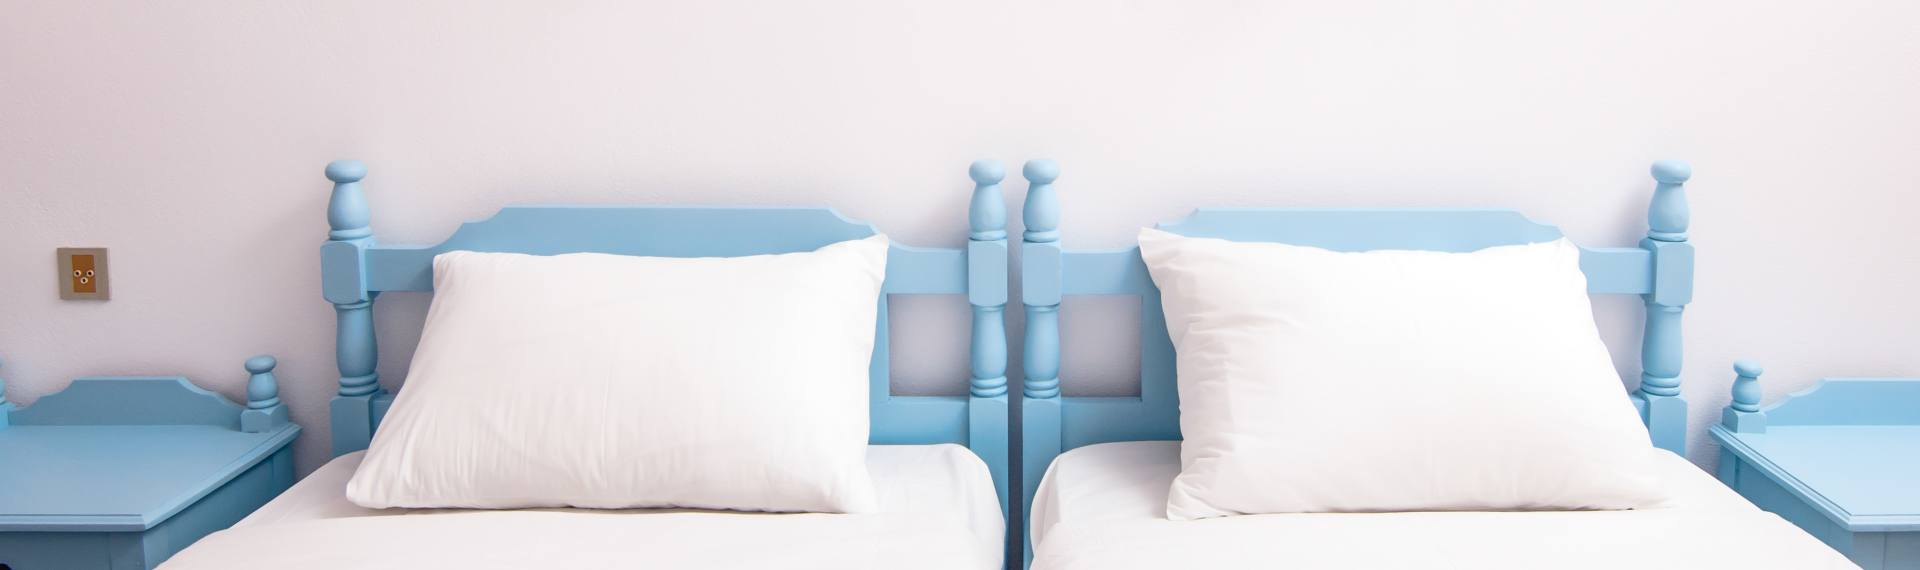 Sphinx Hotel Rooms in Naxos